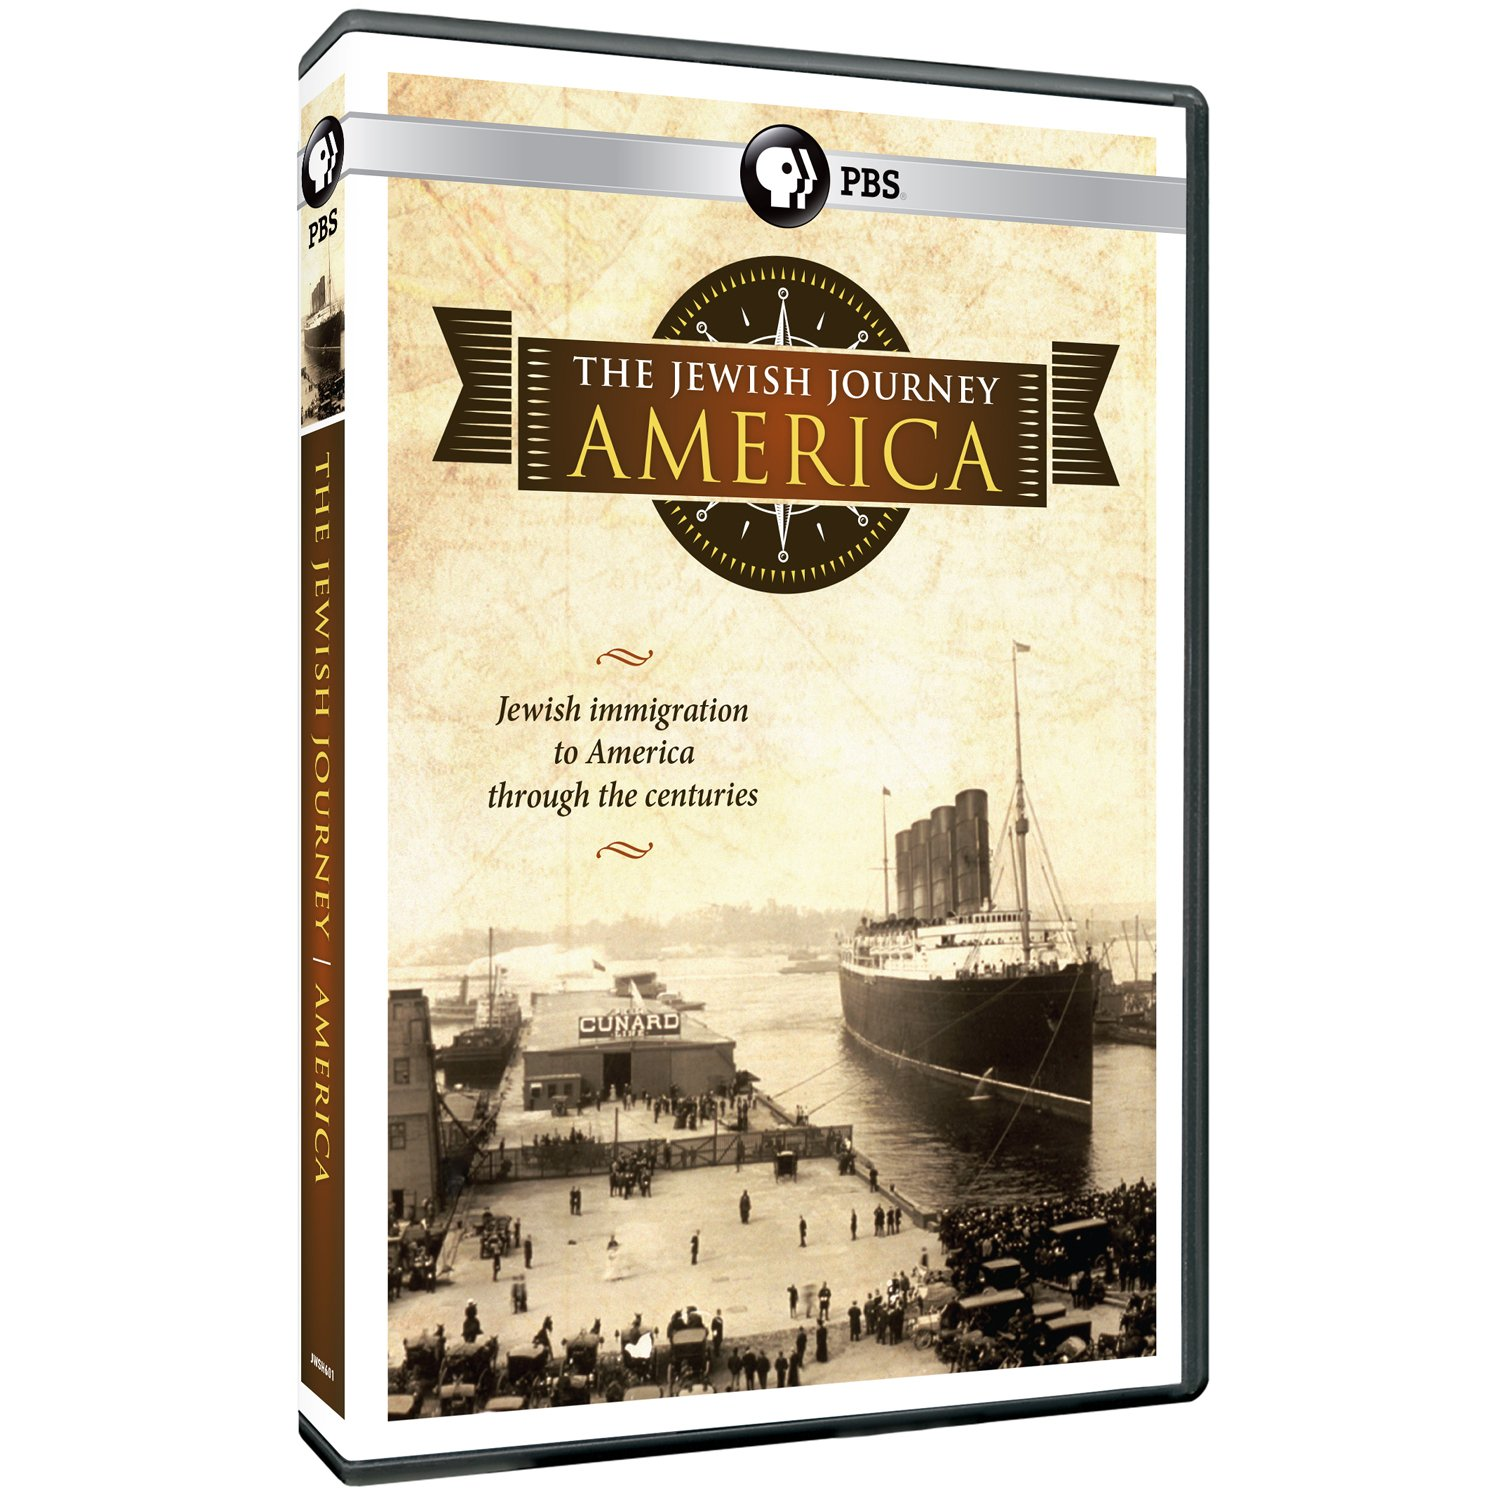 DVD : The Jewish Journey: America (DVD)